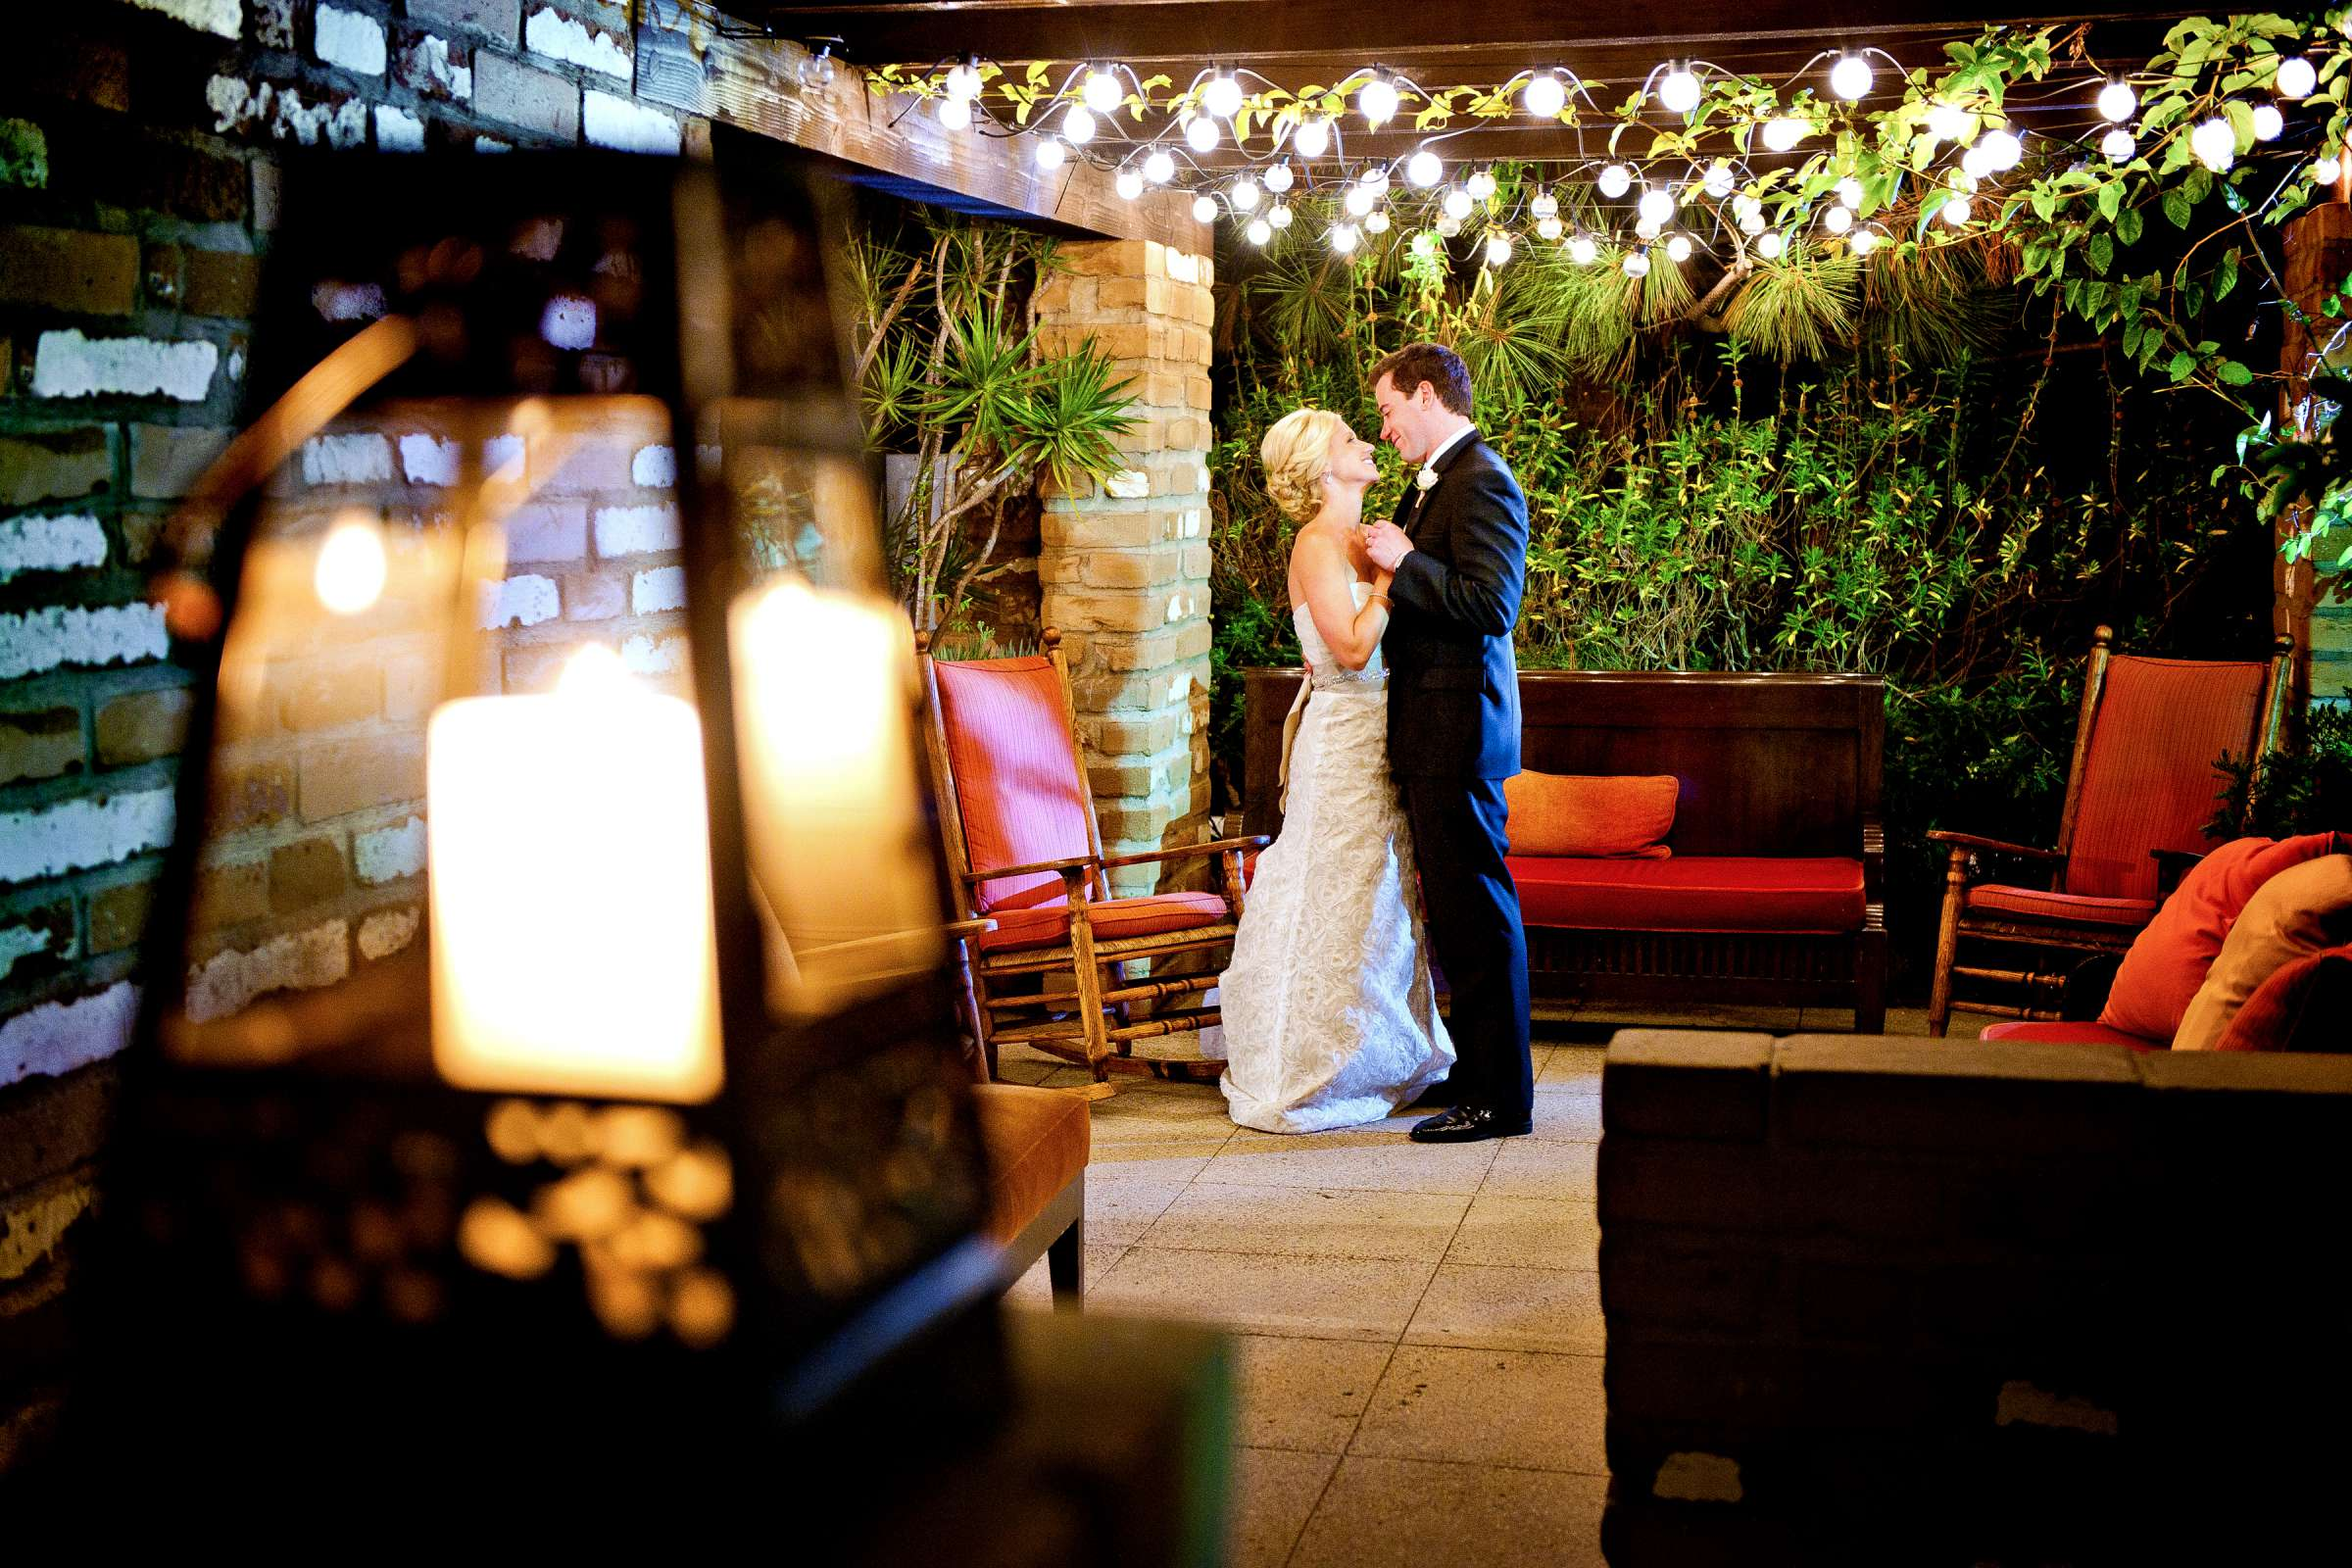 Night Shot at Estancia Wedding coordinated by Emily Smiley, Marissa and Danny Wedding Photo #2 by True Photography